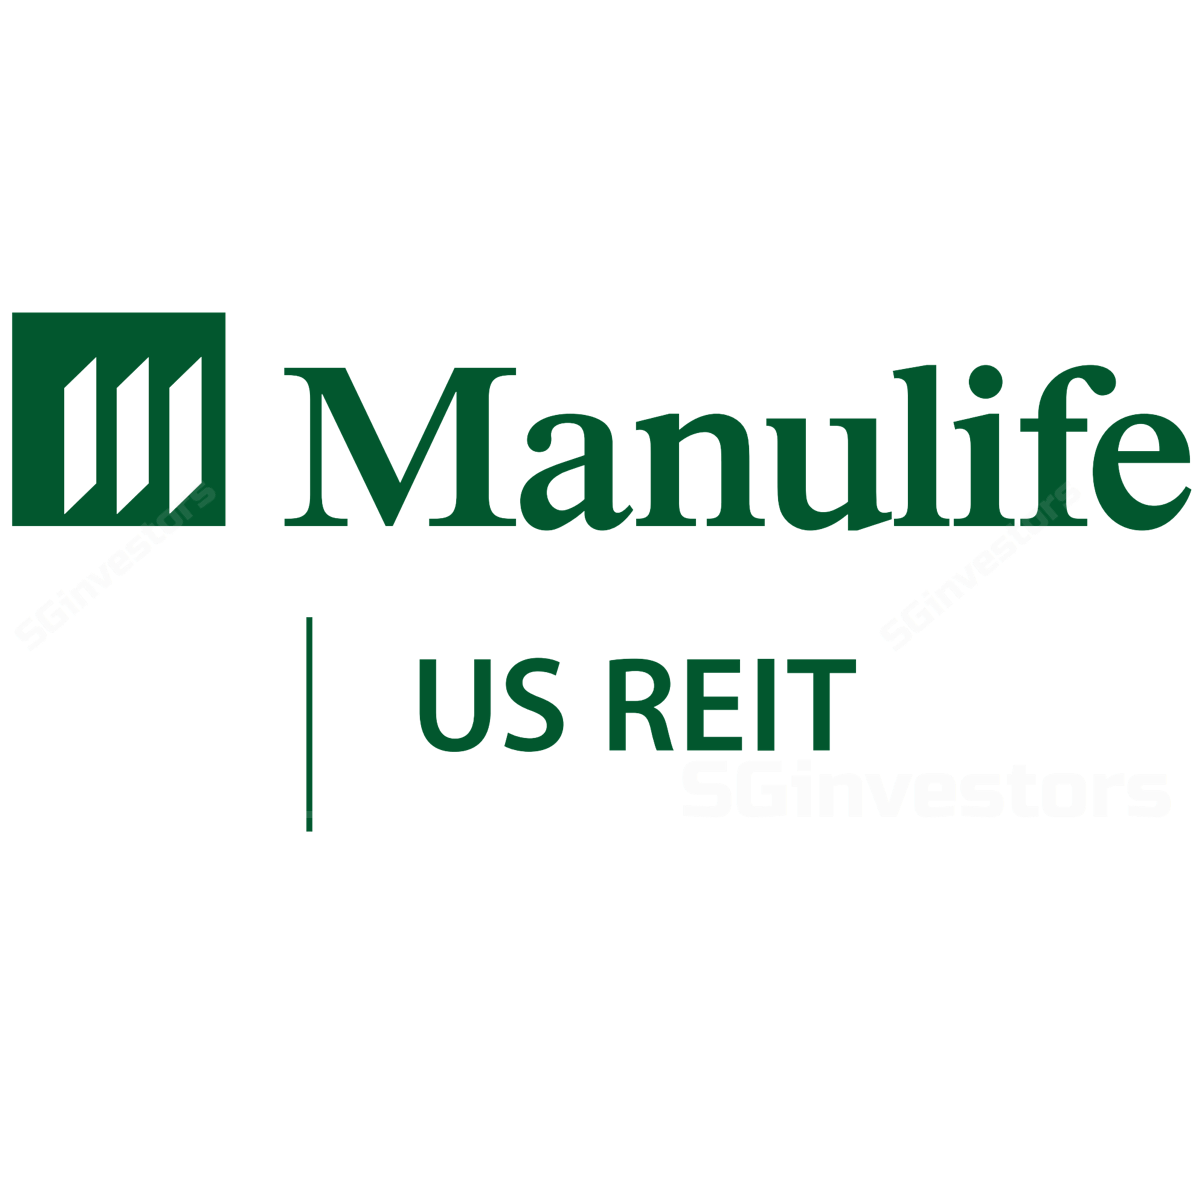 Manulife US Real Estate Inv - DBS Group Research Research 2018-08-07: Stars Still Aligned